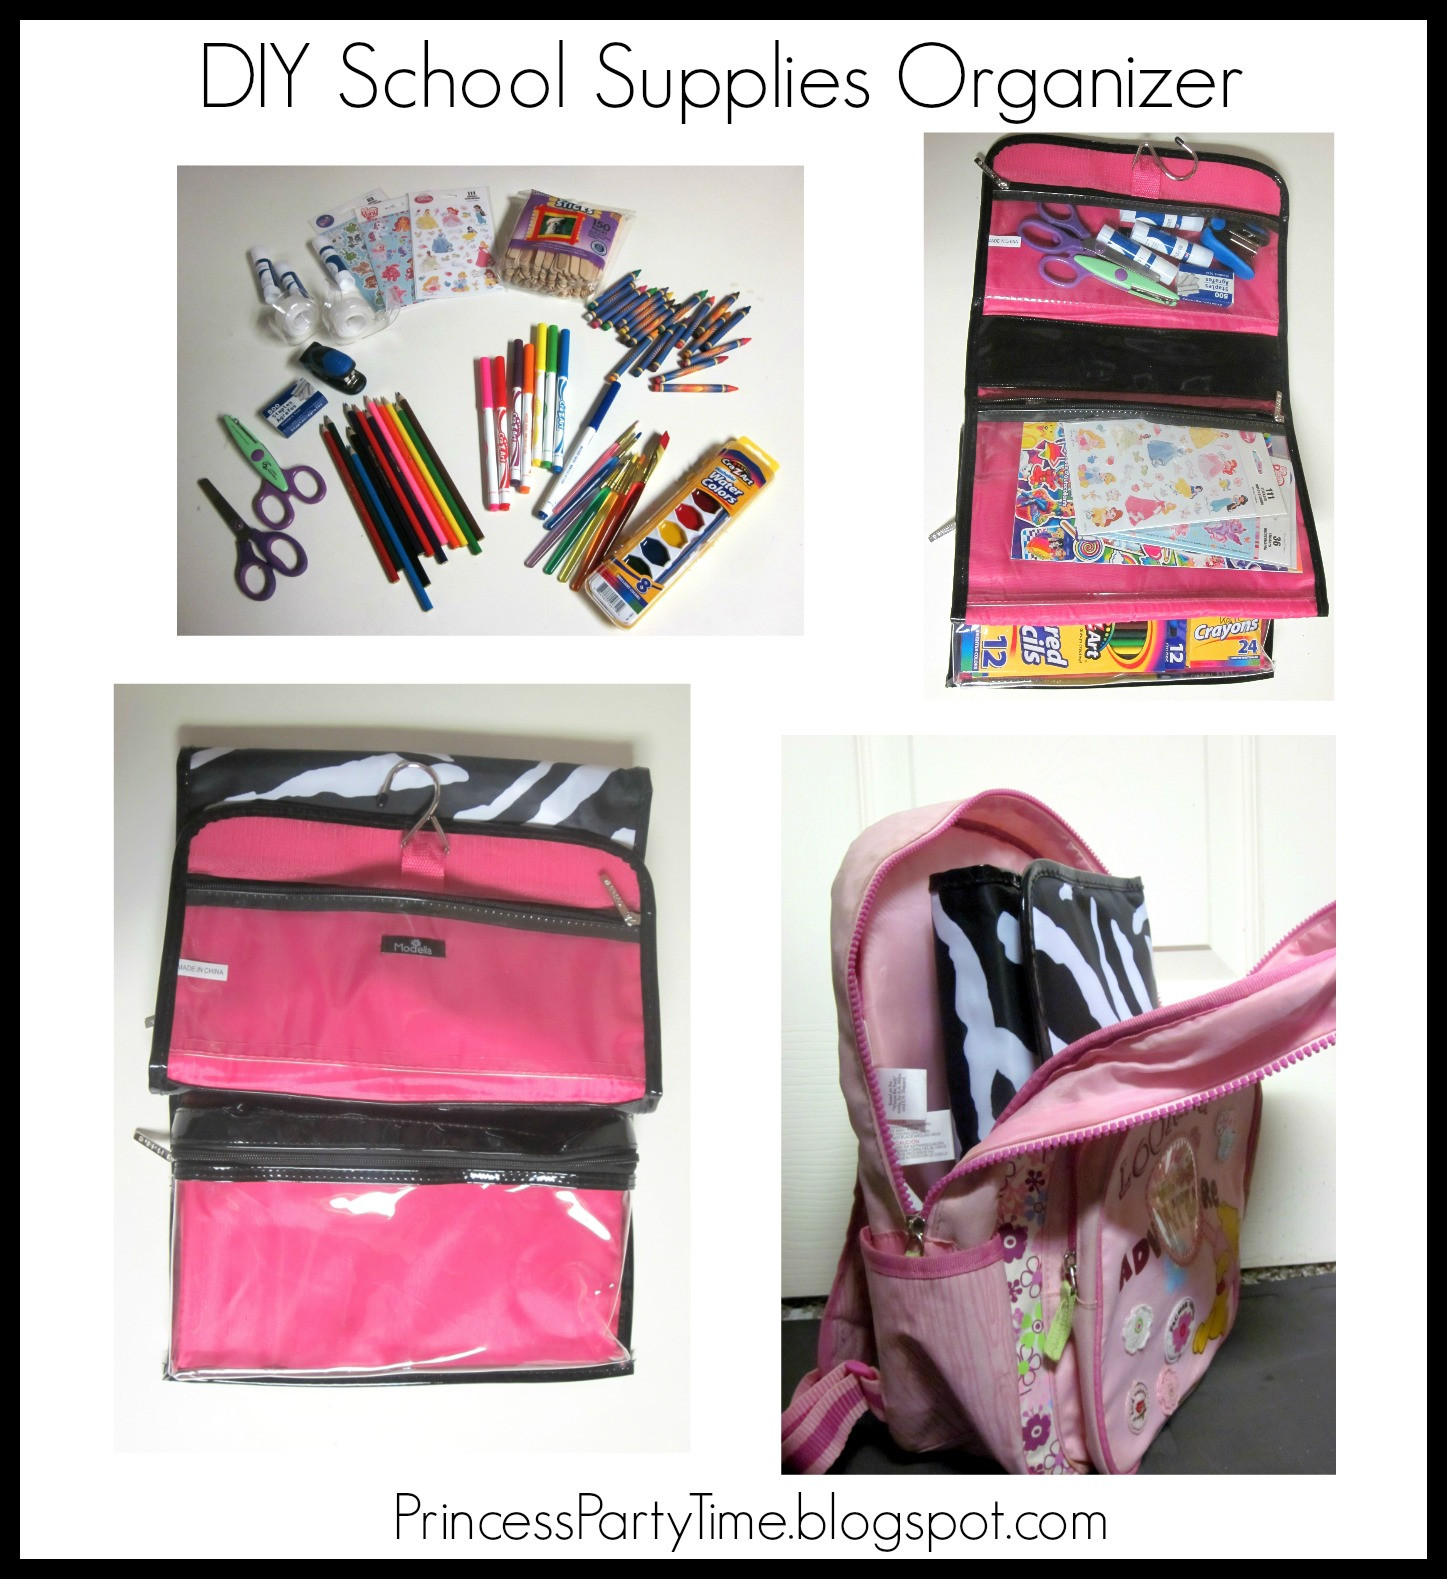 Best ideas about Backpack Organizer DIY . Save or Pin It s a Princess Thing DIY Back To School Supplies Now.